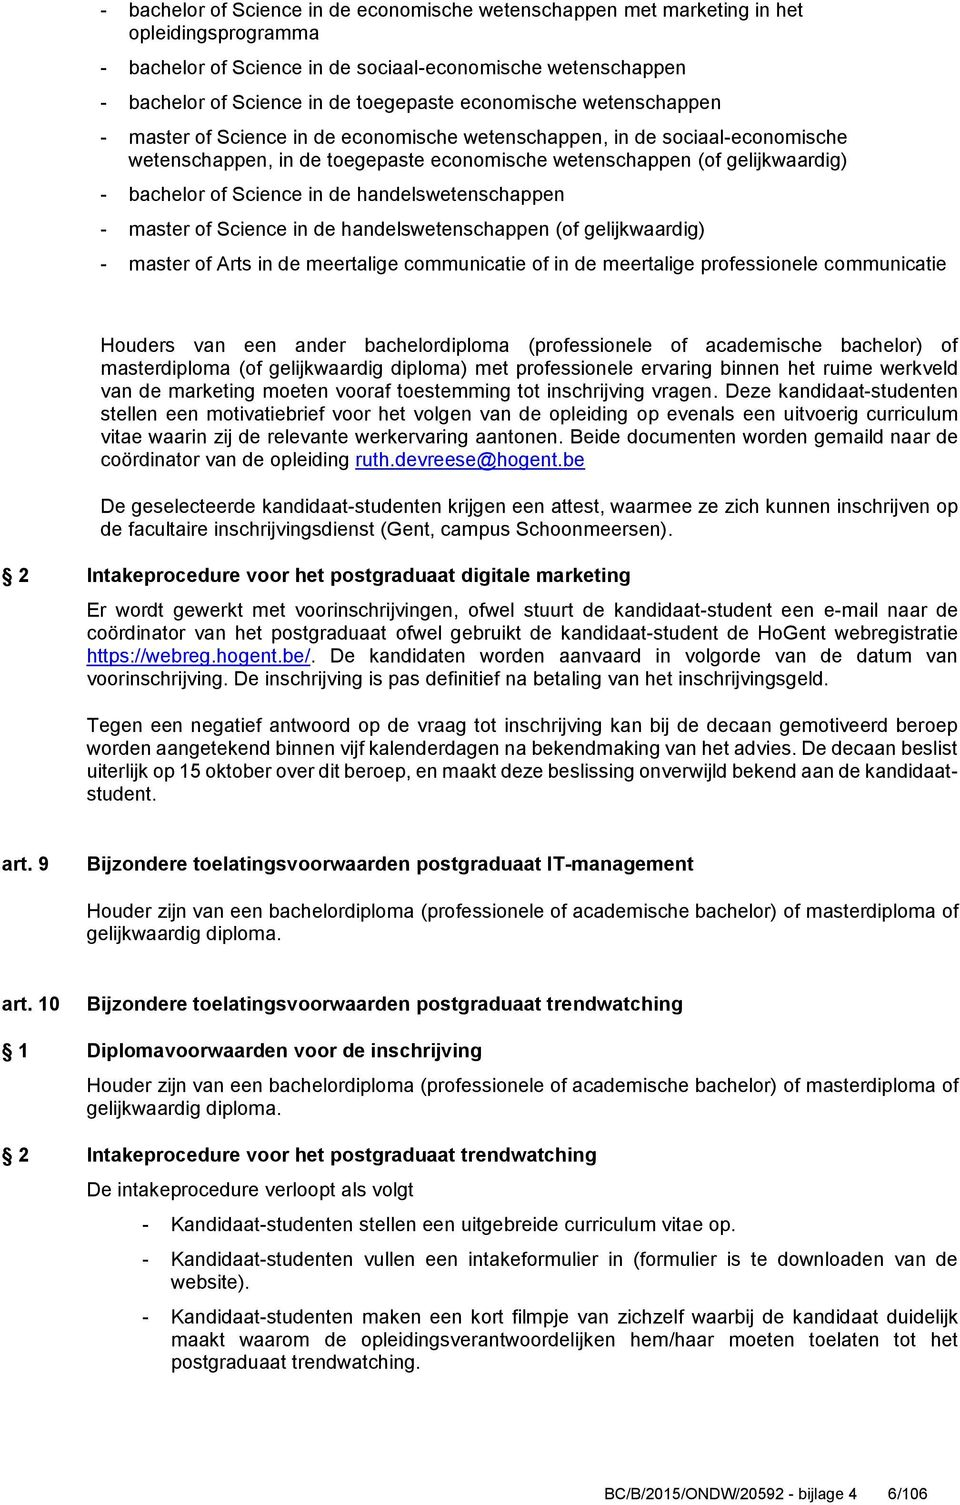 Science in de handelswetenschappen - master of Science in de handelswetenschappen (of gelijkwaardig) - master of Arts in de meertalige communicatie of in de meertalige professionele communicatie